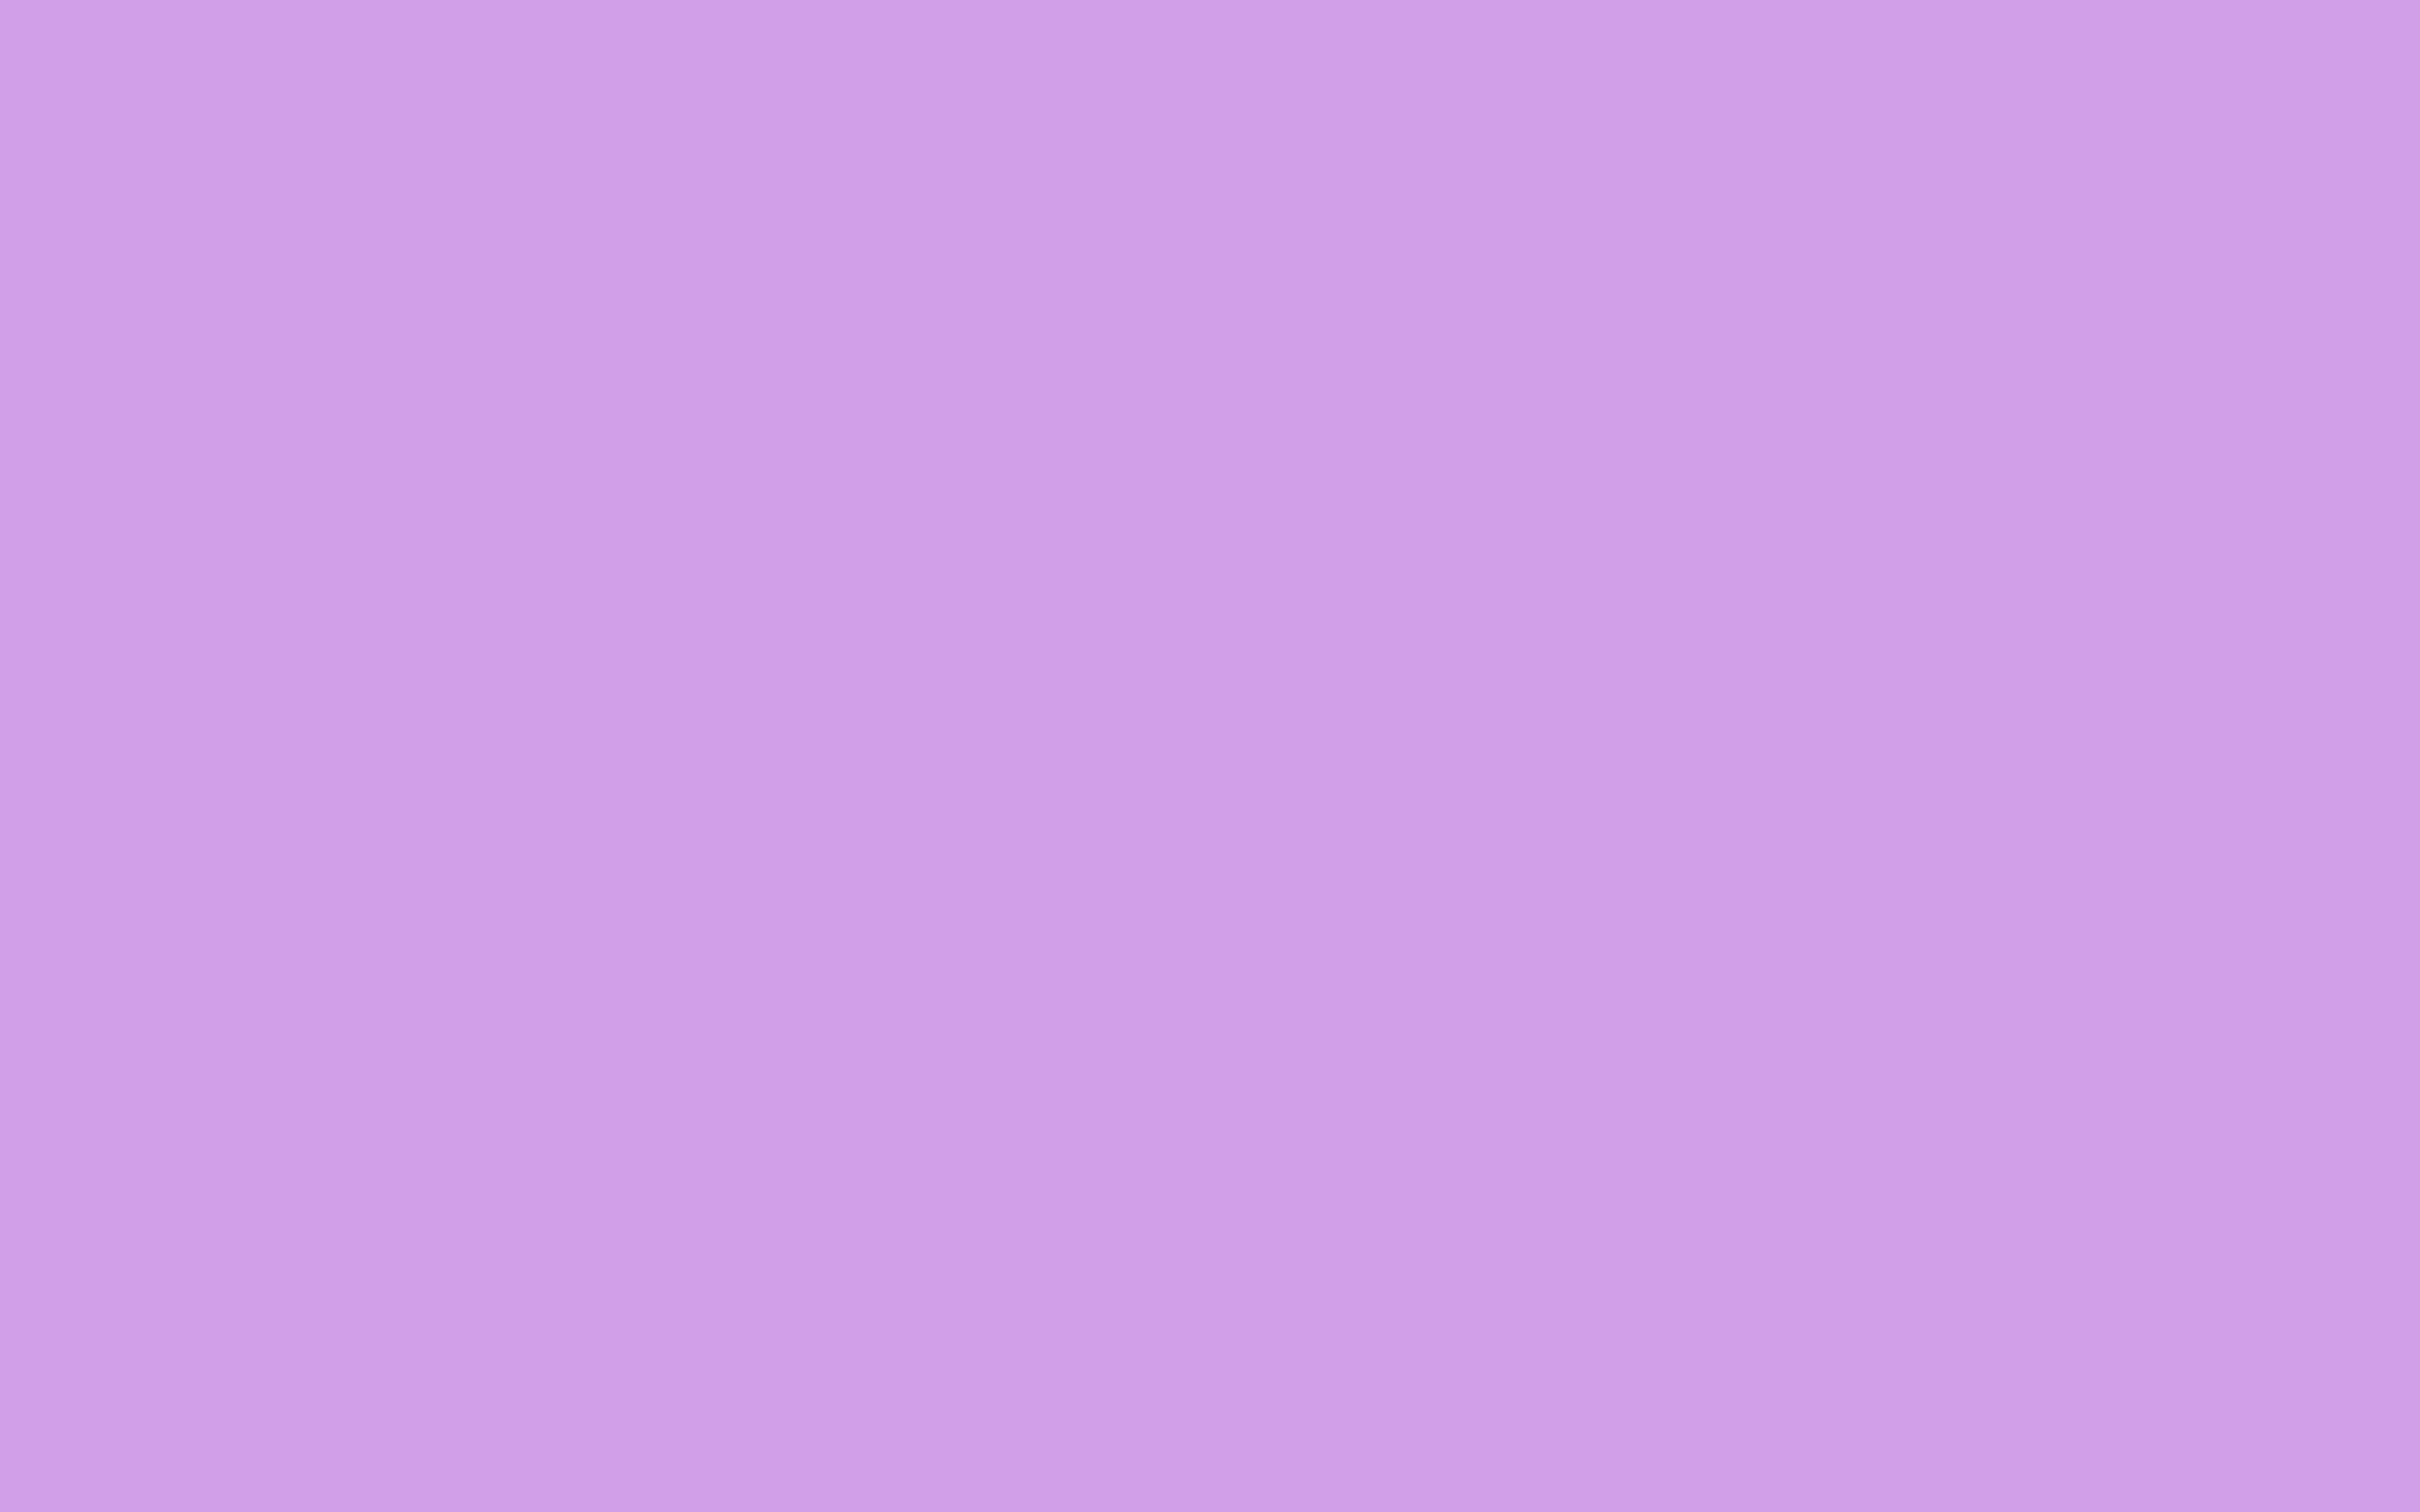 2560x1600 Bright Ube Solid Color Background